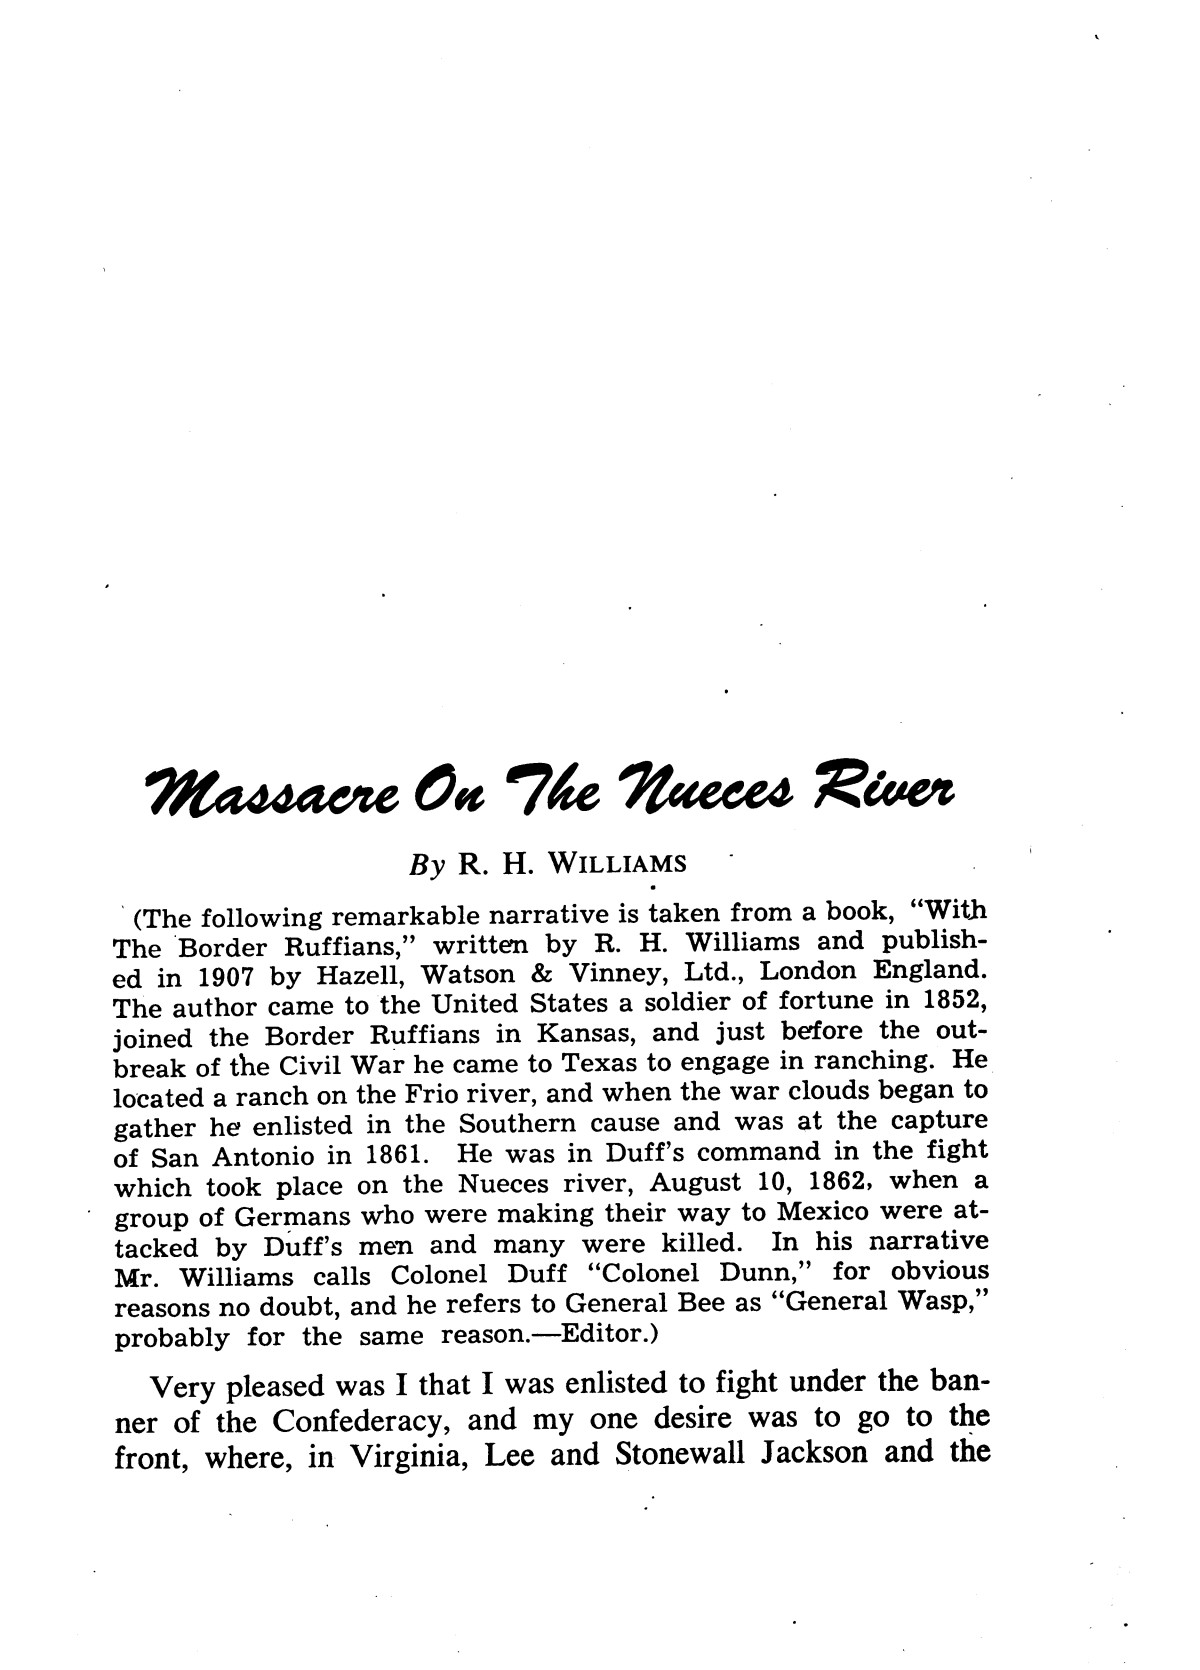 Massacre on the Nueces River; story of a Civil War tragedy.                                                                                                      [Sequence #]: 4 of 39